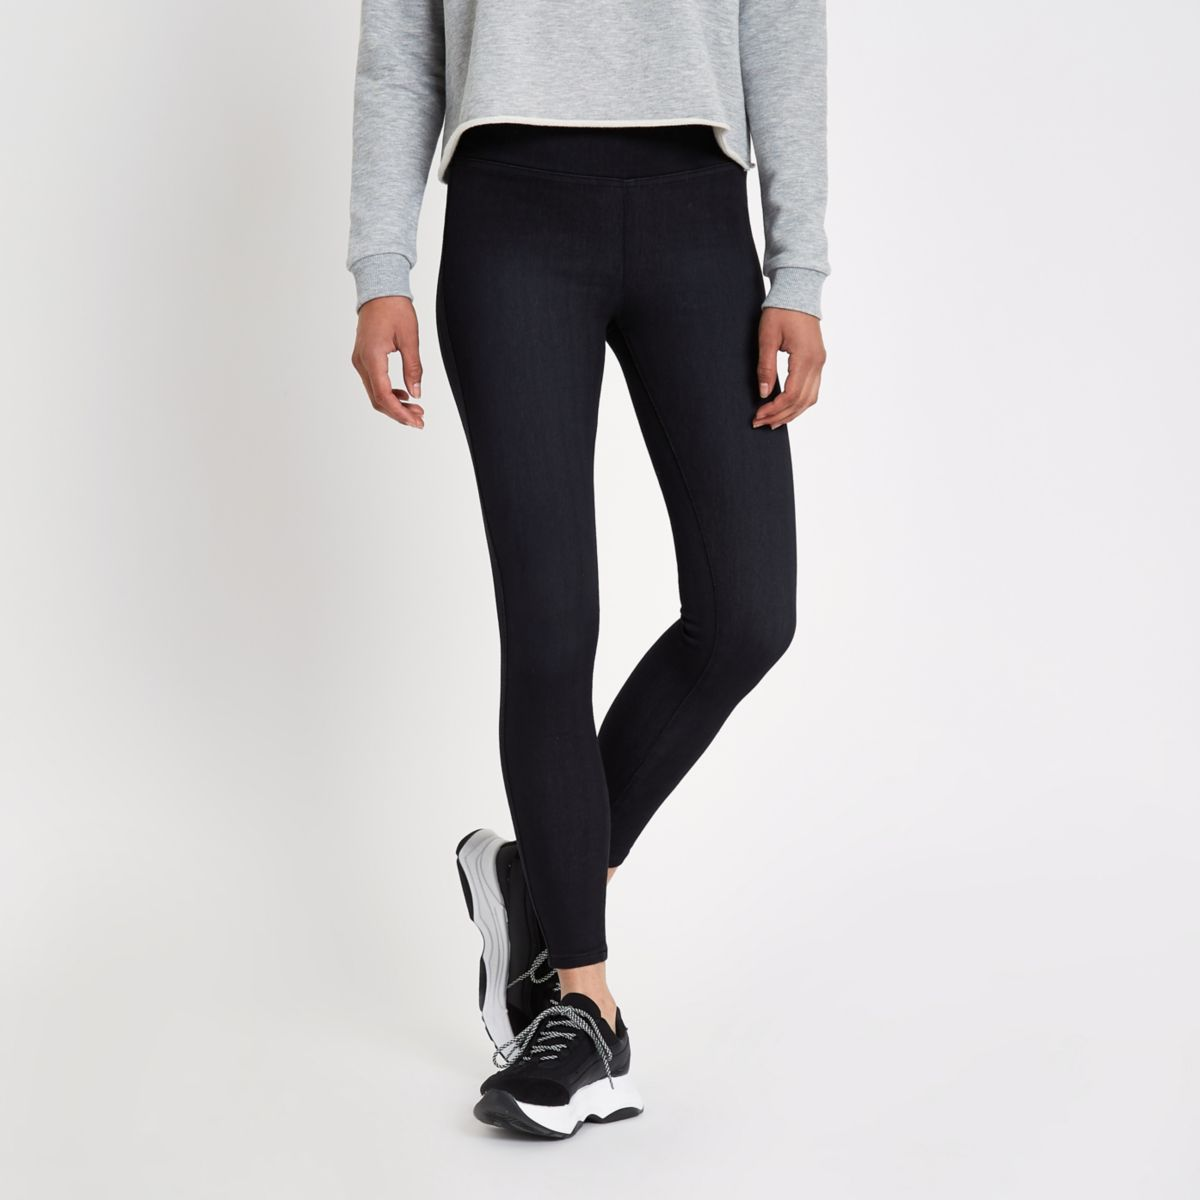 Black High Waisted Denim Leggings by River Island